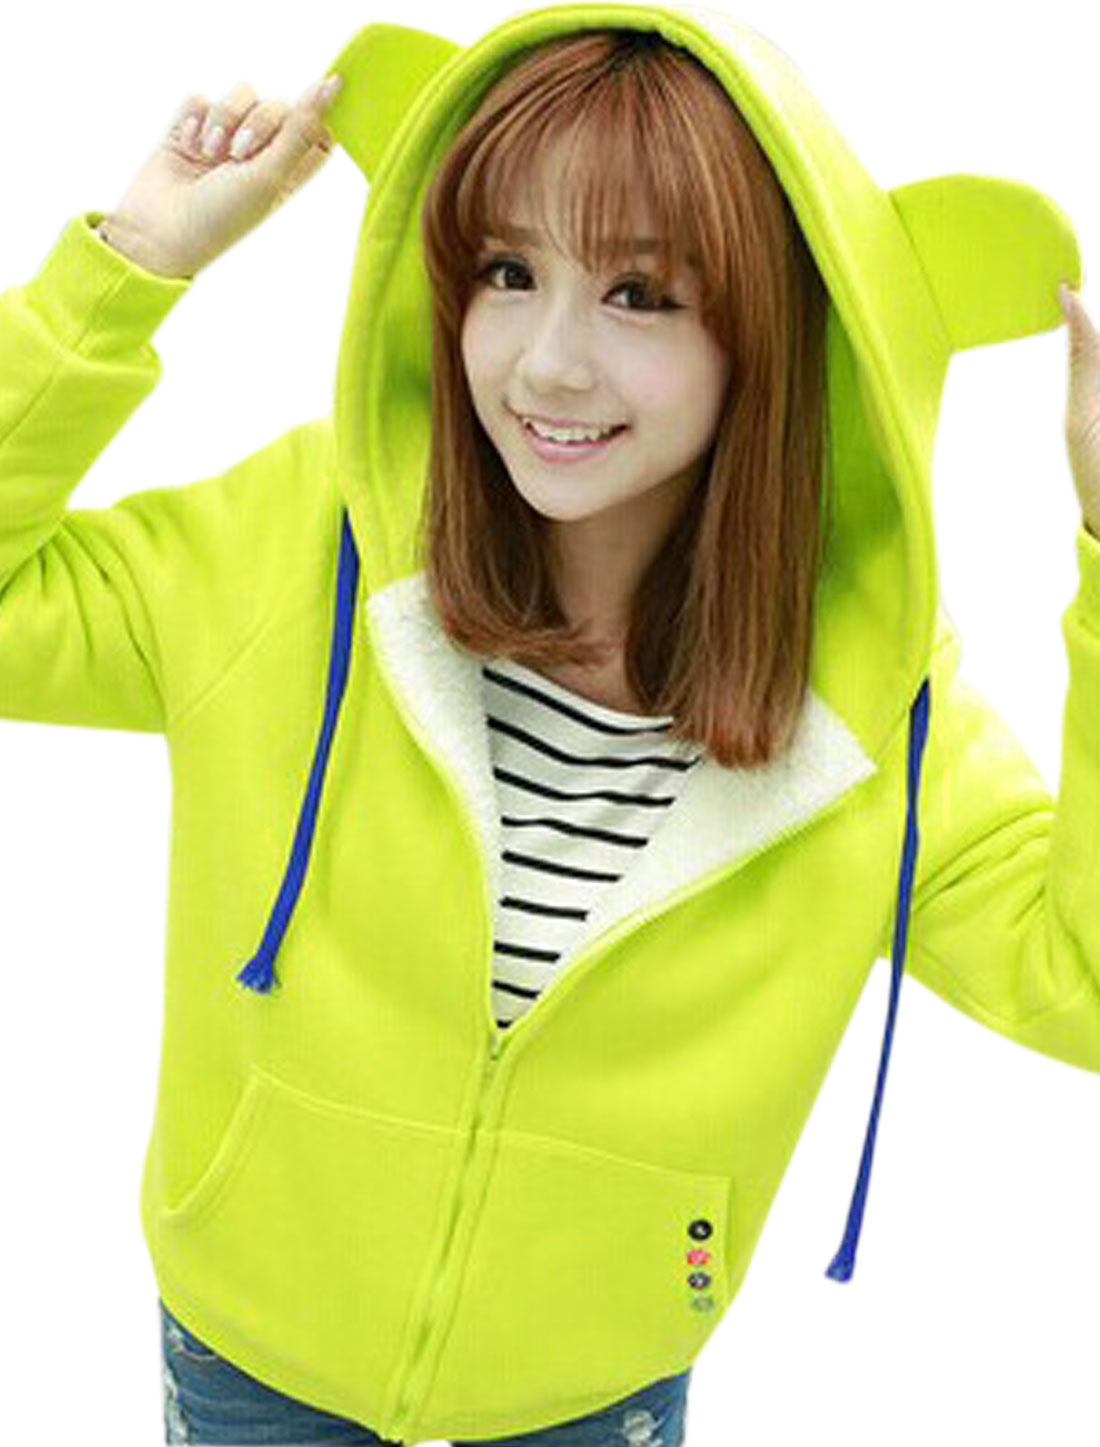 Ladies Zip Closure Button Decor Fashion Hooded Jacket Green Yellow M